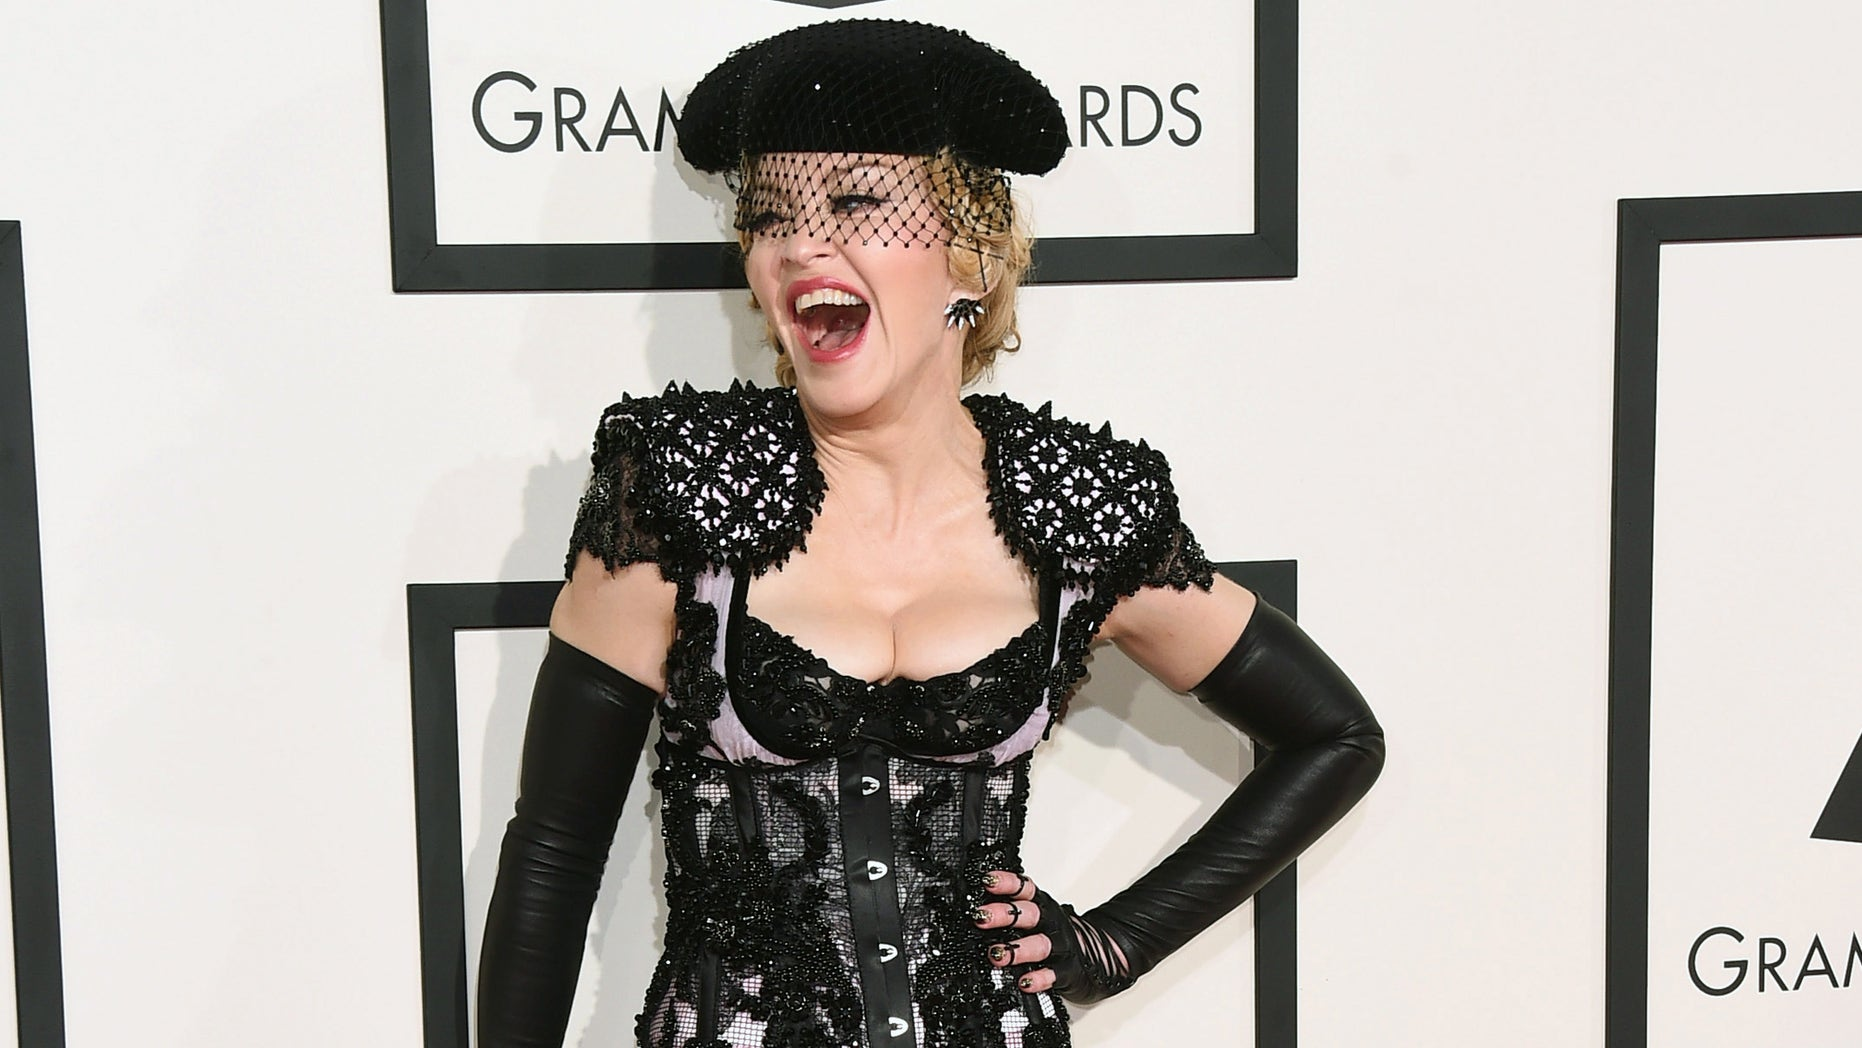 FILE - In this Feb. 8, 2015 file photo, Madonna arrives at the 57th annual Grammy Awards in Los Angeles. The pop icon will launch her Rebel Heart Tour this fall, which includes more than 60 shows across North America, Europe, Australia and Asia. (Photo by Jordan Strauss/Invision/AP, File)